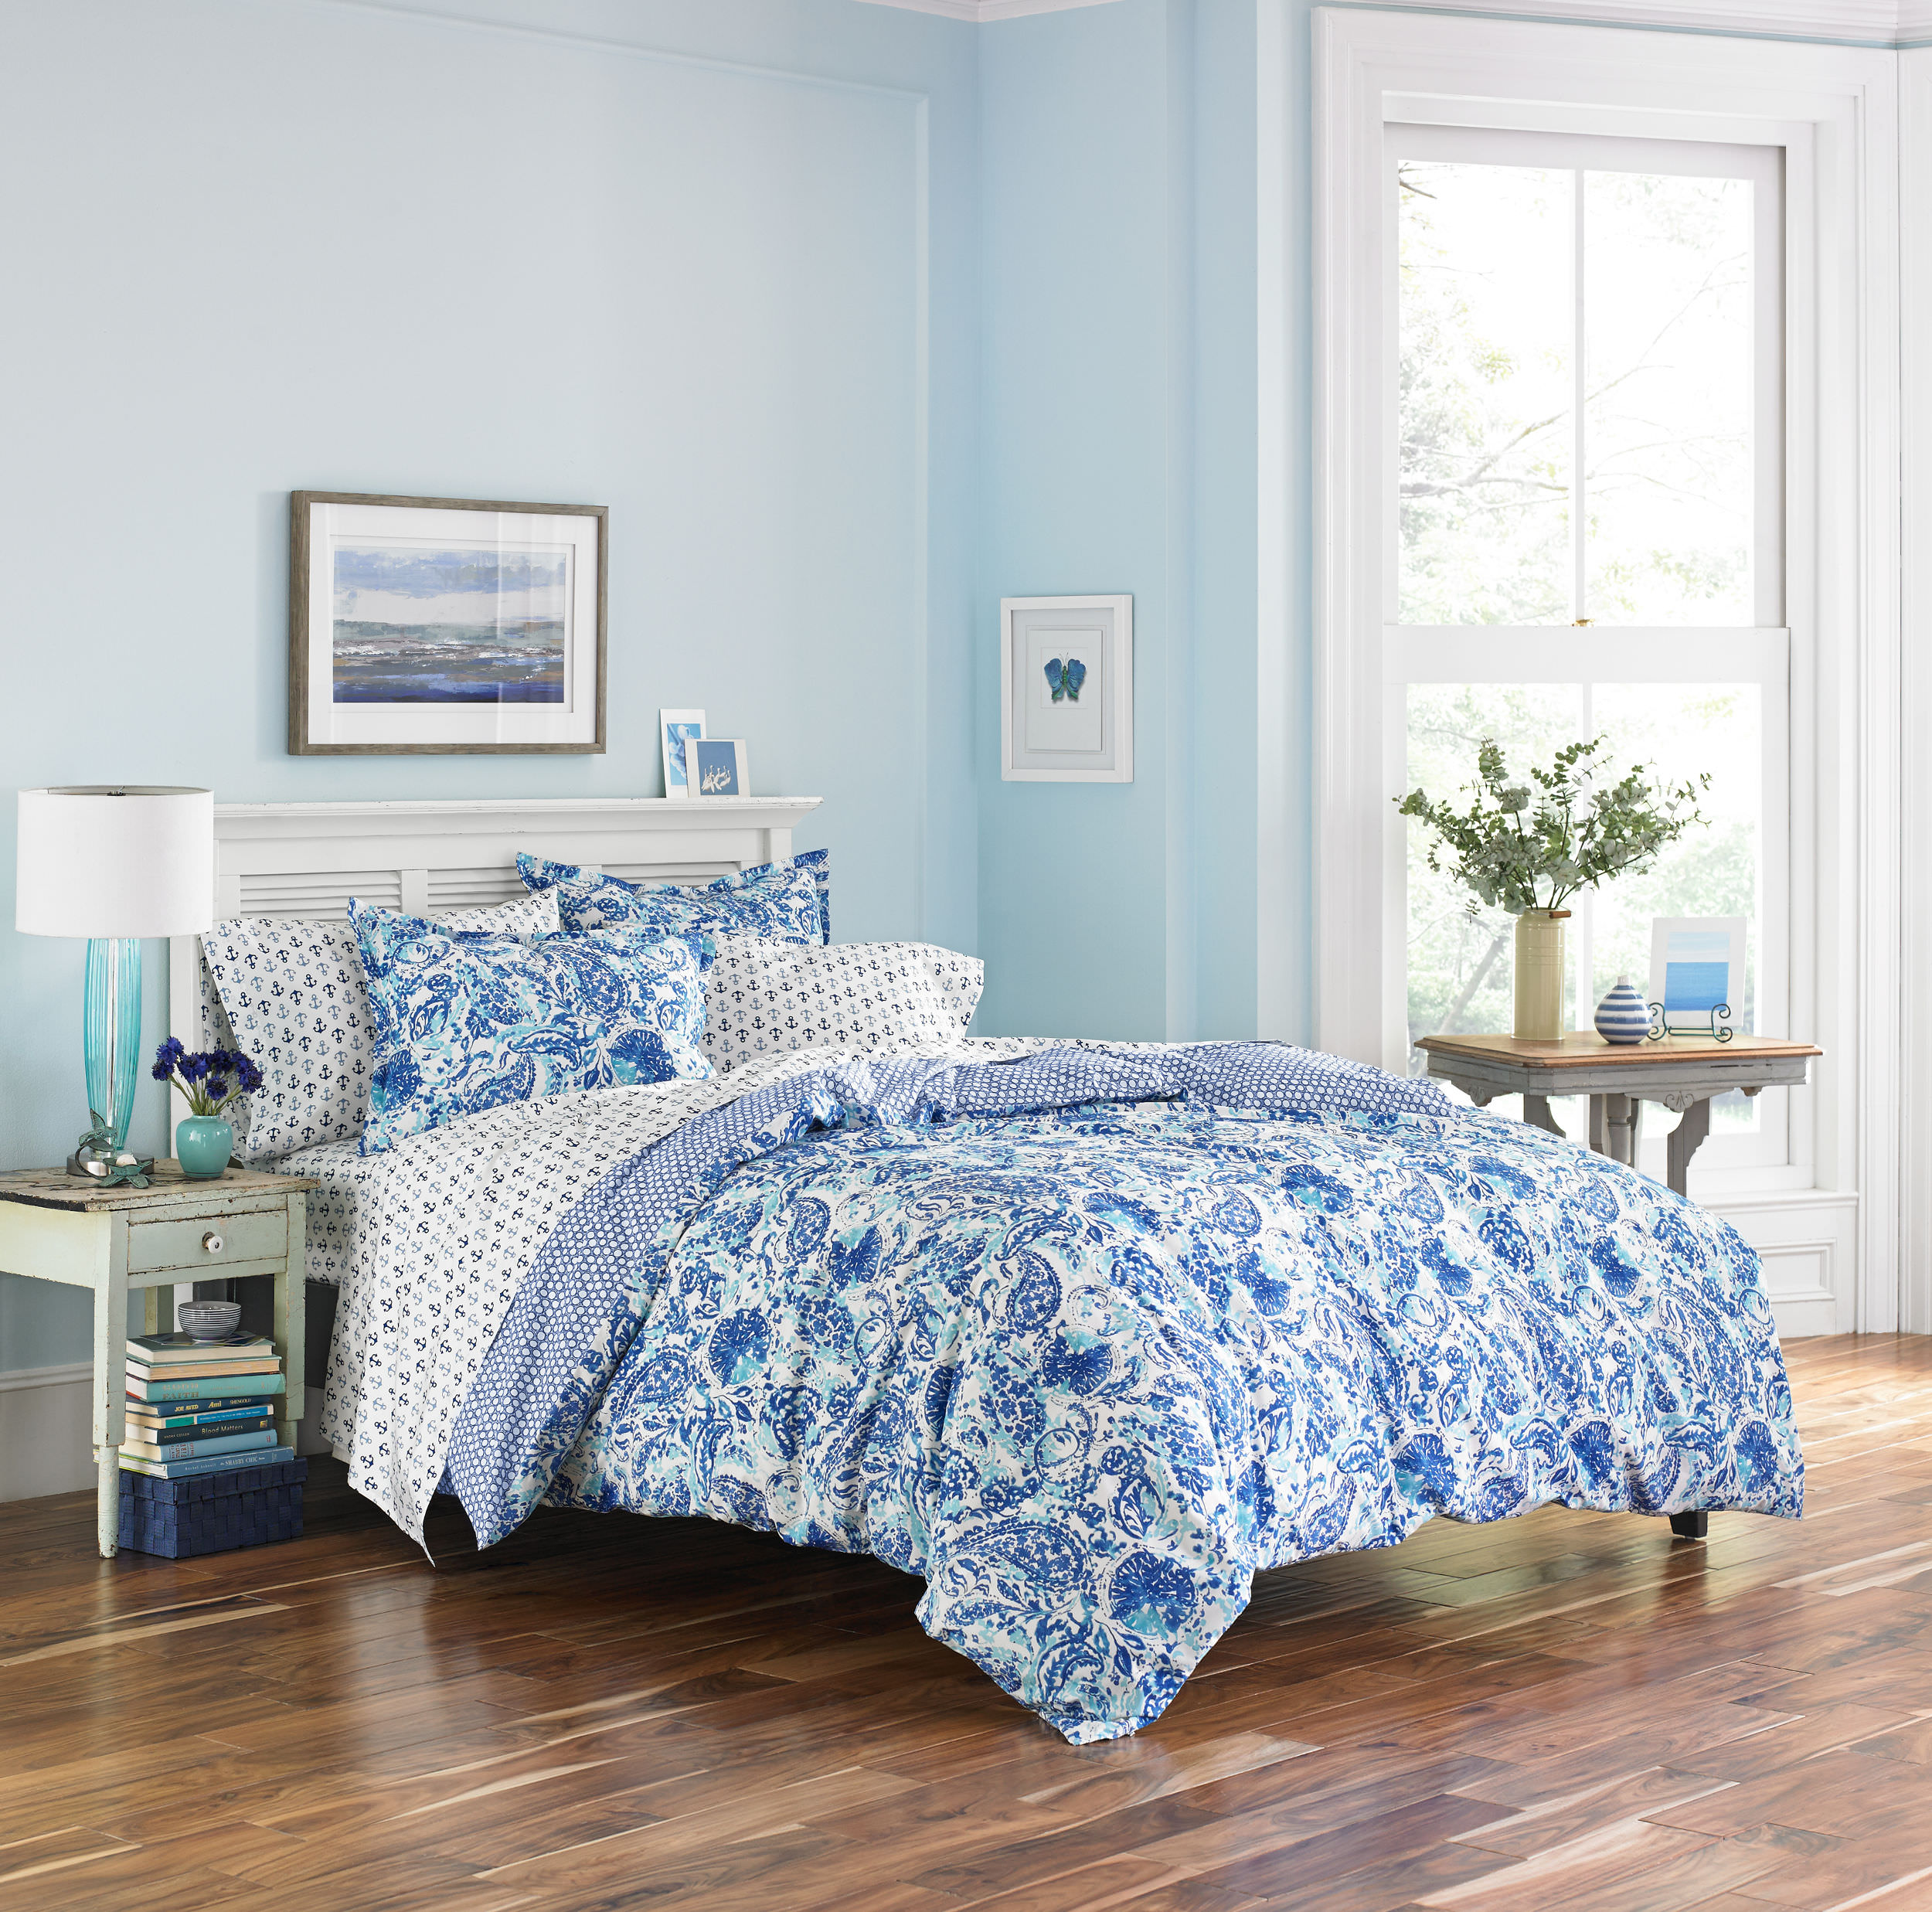 Poppy & Fritz Brooke Comforter Set, Twin